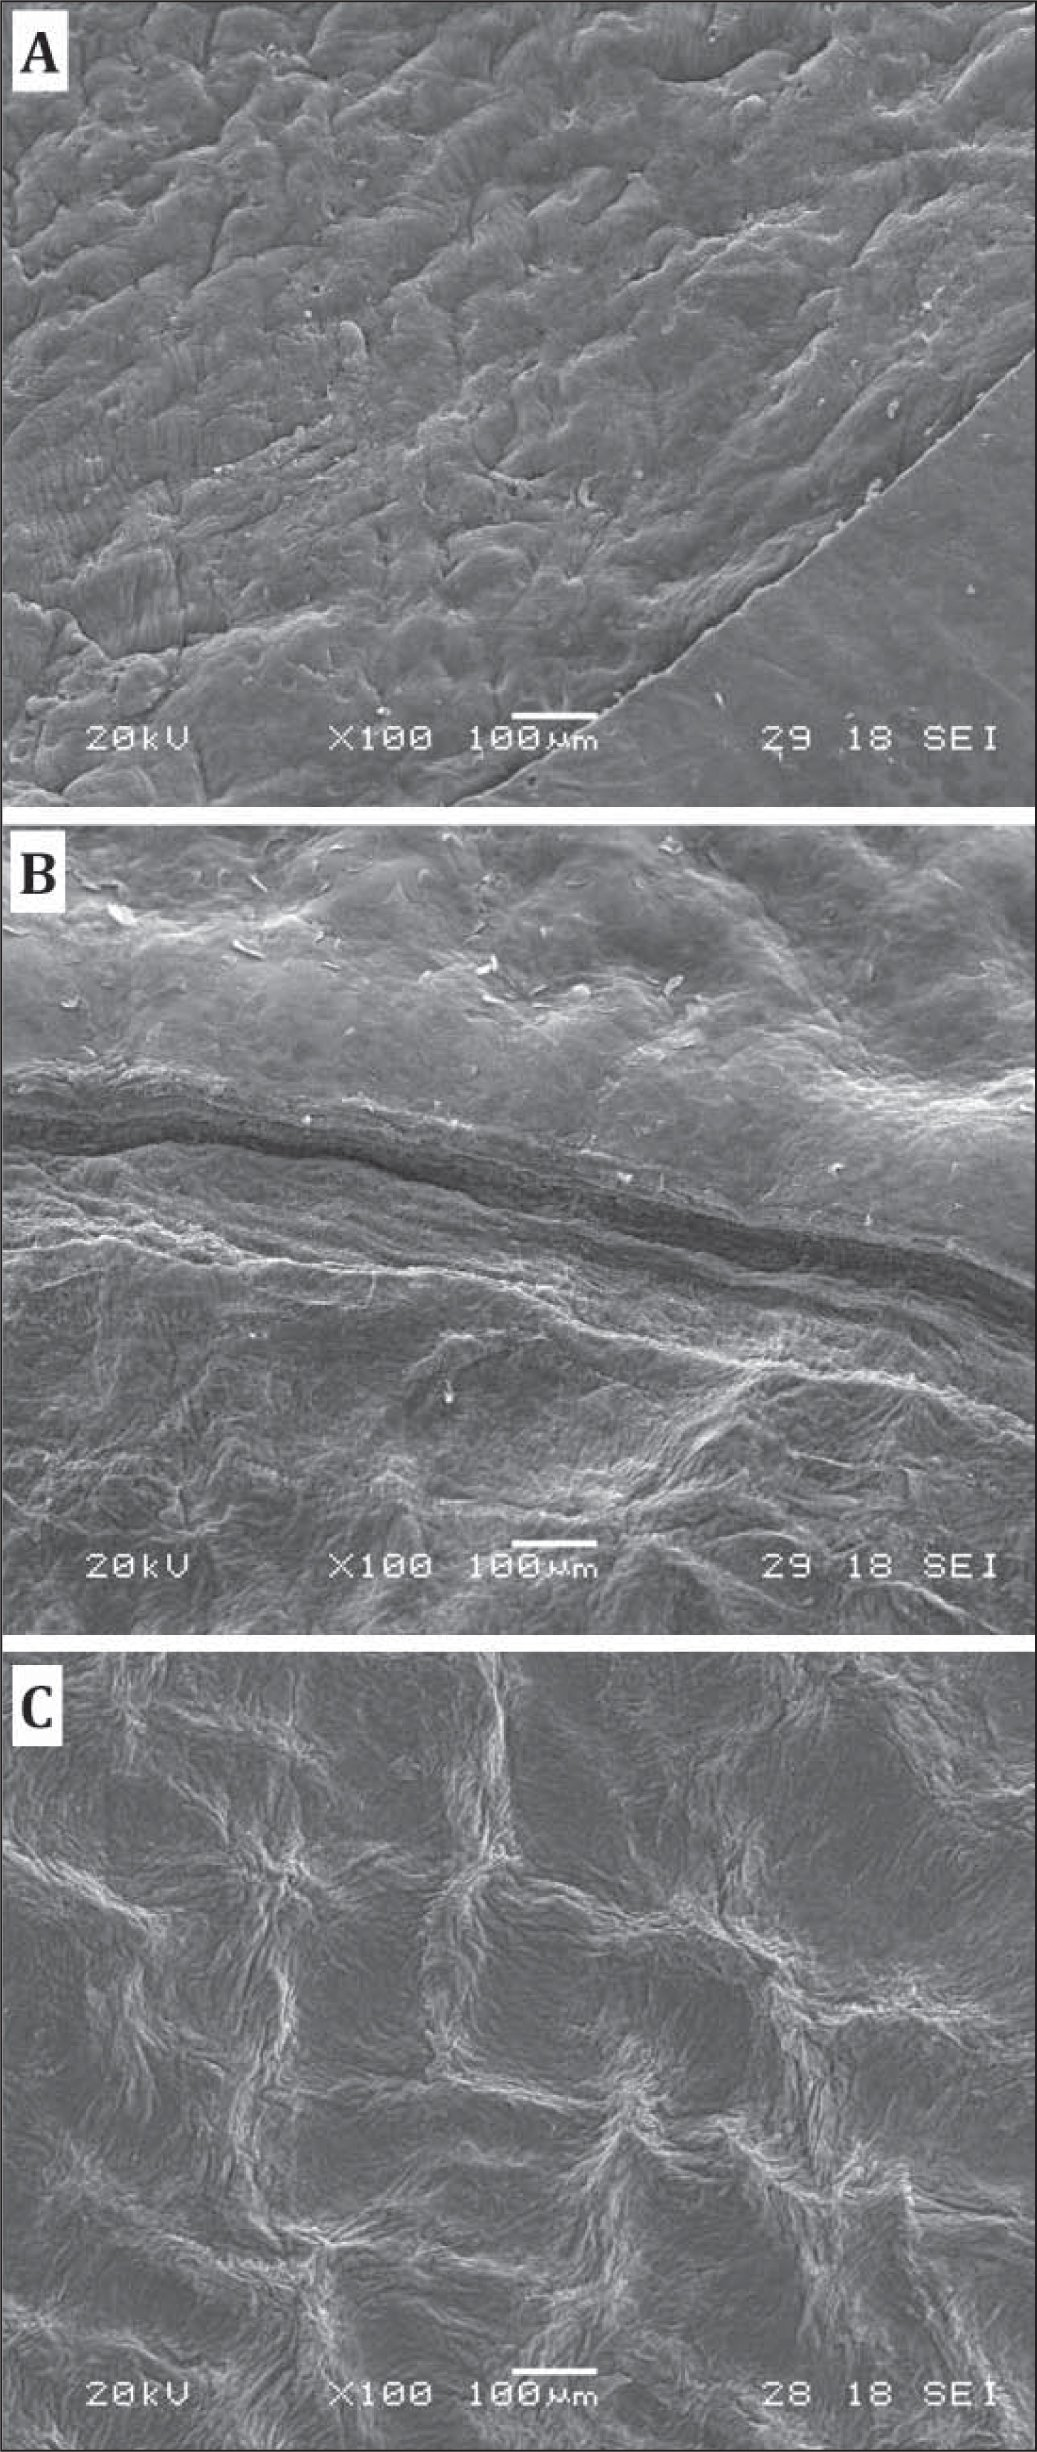 Scanning electron microscopy (SEM) images of the corneal stromal bed treated with pattern D. (A) The transition between lamellar ring and cap cut is barely visible. (B) The side cut and surface of lamellar ring. (C) The central corneal flap bed.